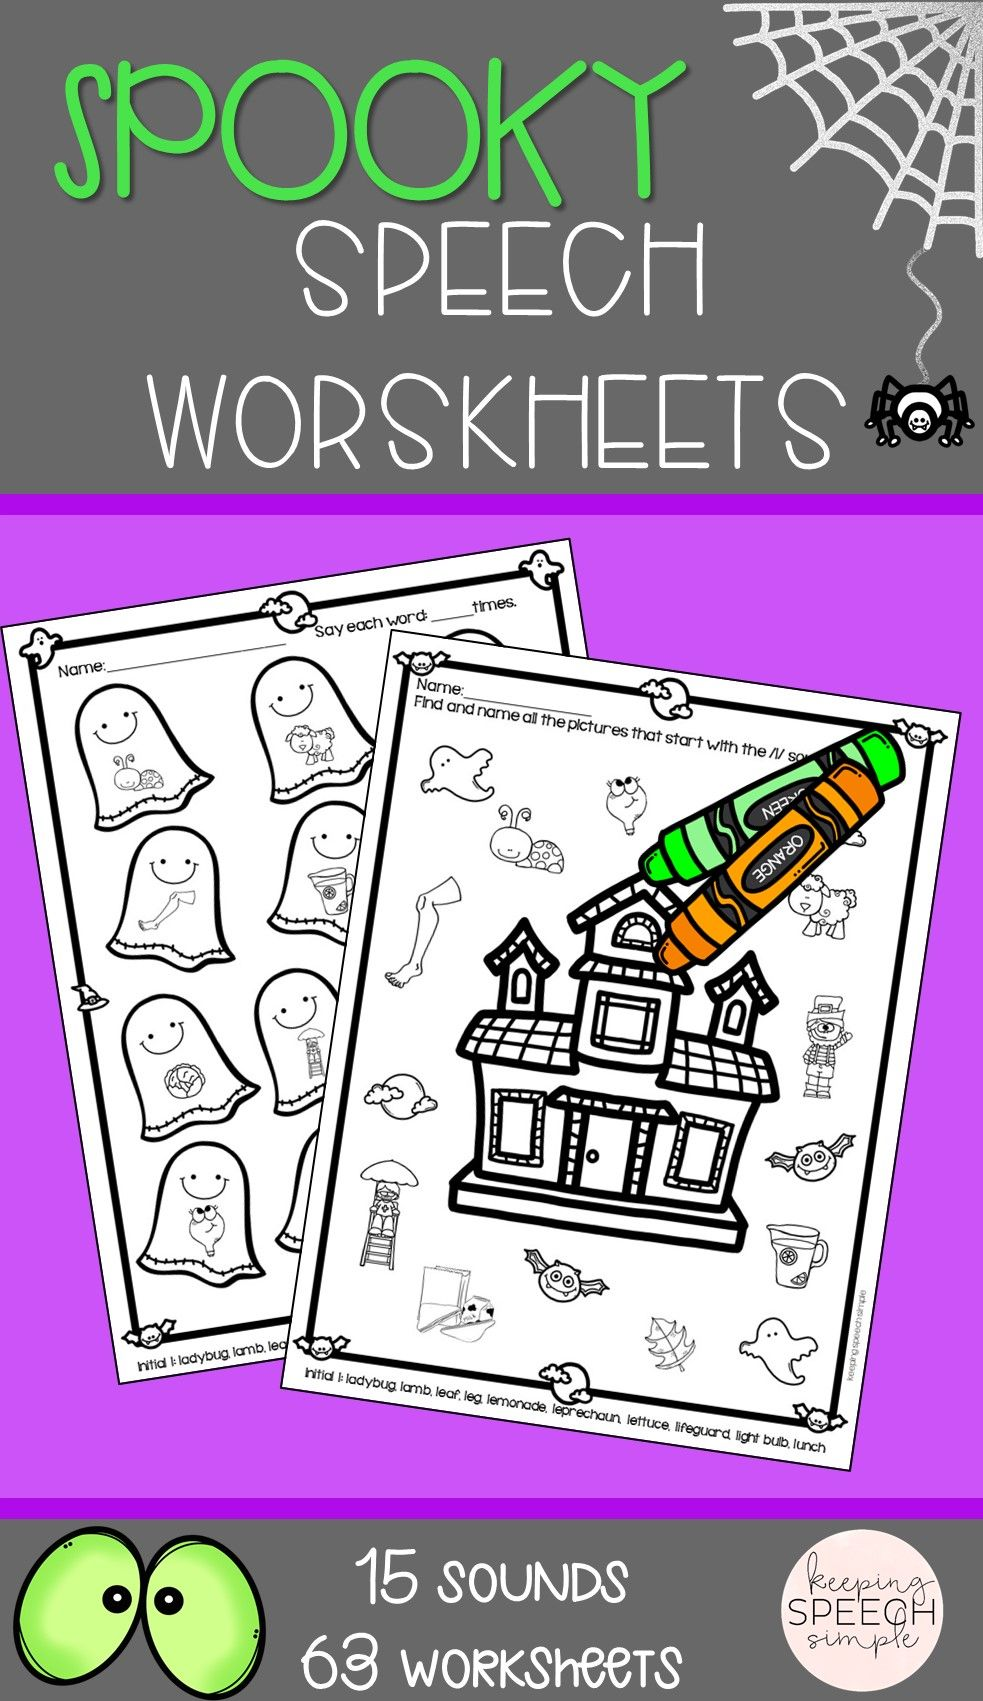 These Fun Halloween Themed Worksheets Are Perfect For October Therapy Speech Therapy Worksheets Halloween Speech Activities Halloween Speech Therapy Activities [ 1701 x 983 Pixel ]